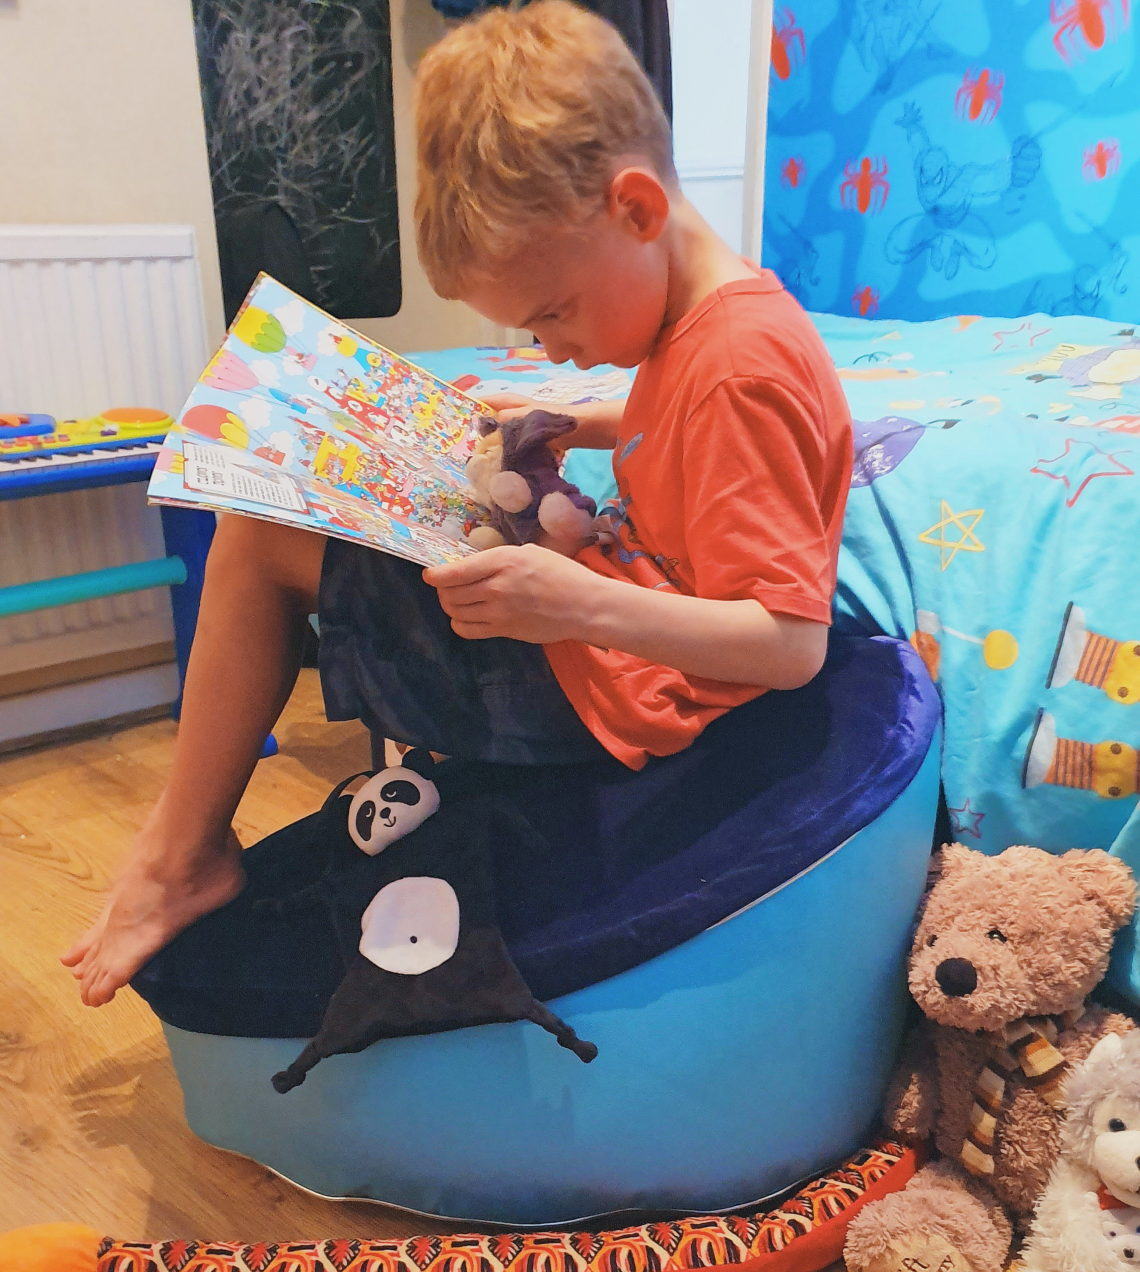 A 6 year old boy in his bedroom sat on a snuggle seat beanbag and reading where's wally